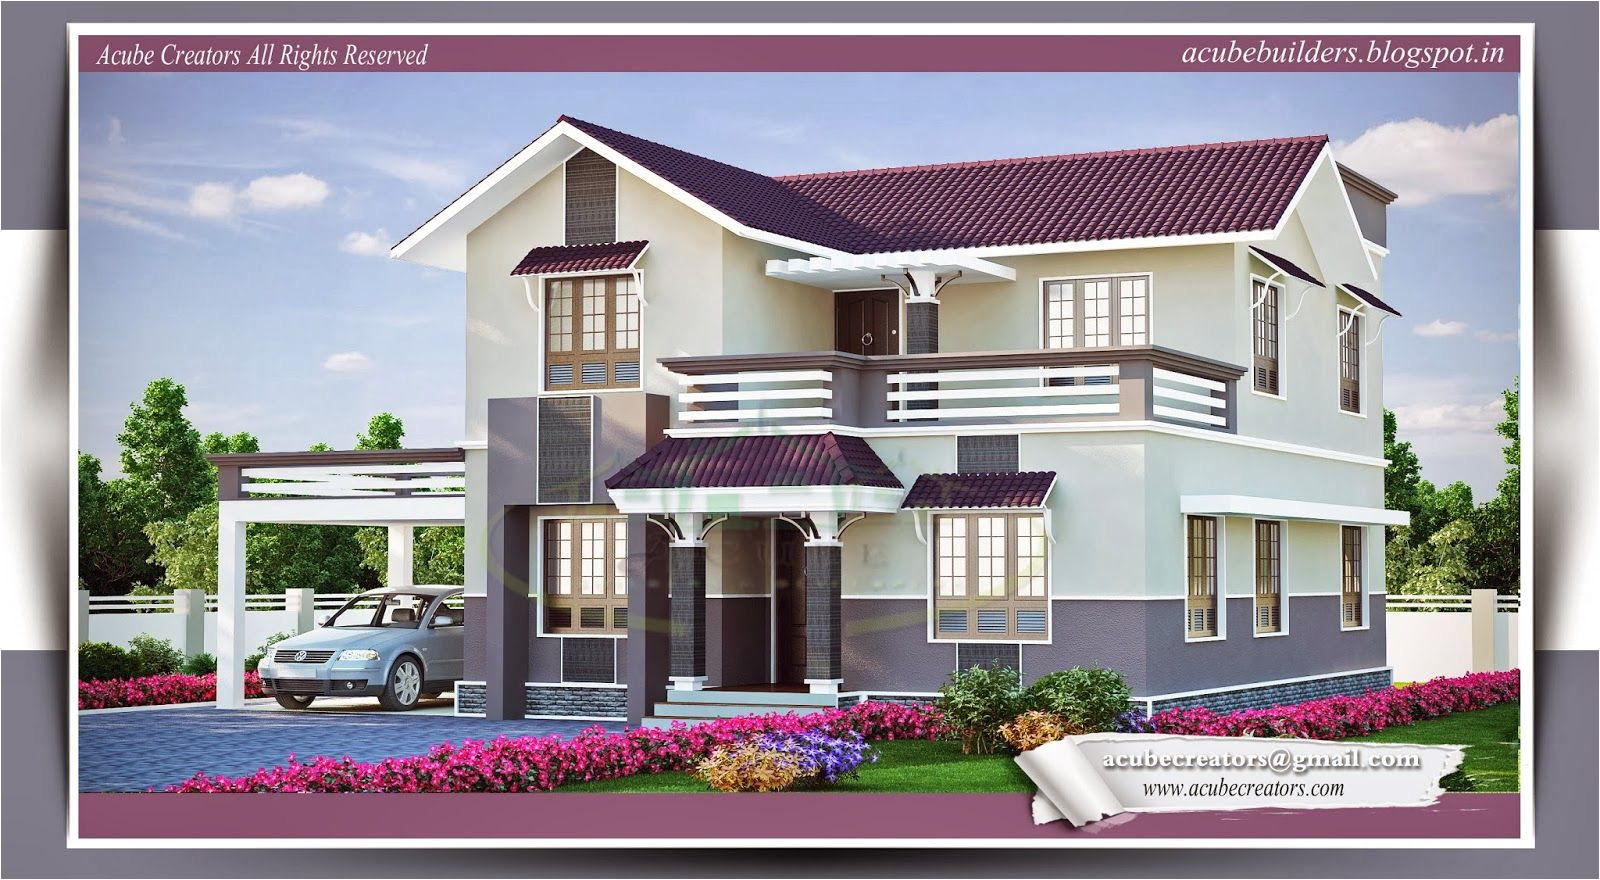 Home Design Plans with Photos In Kerala Kerala Beautiful House Plans Photos Home Decoration